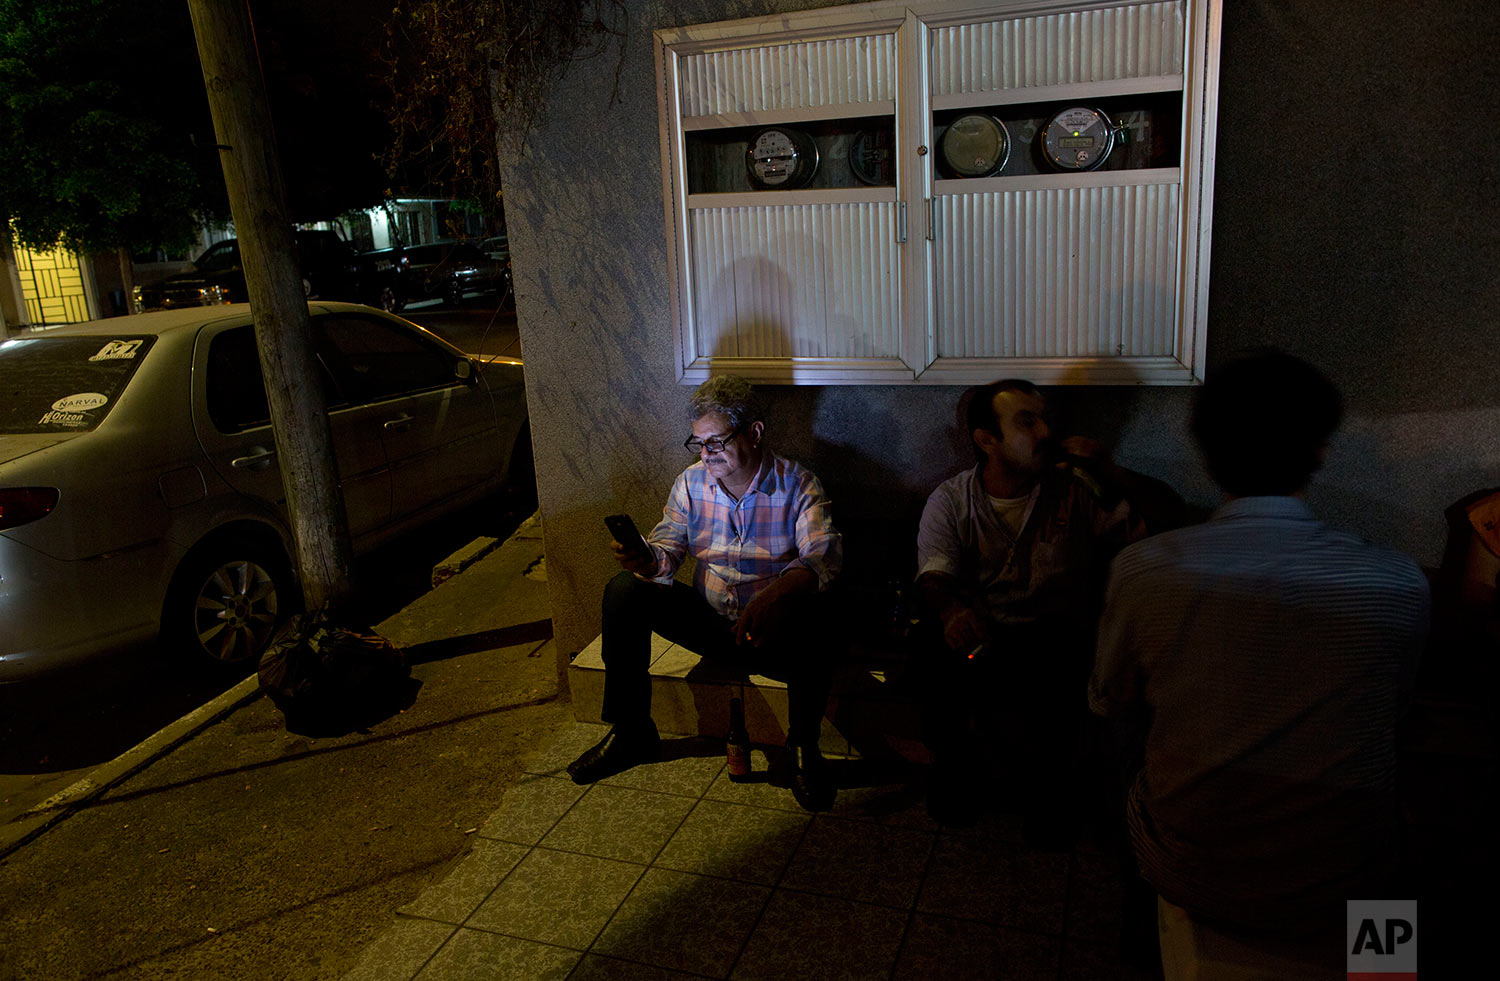 In this June 27, 2017 photo, a family from the United States visits the shrine of Jesus Malverde, the so-called narco-saint revered by many of Mexico's drug traffickers, in Culiacan, Sinaloa state, Mexico. In Sinaloa people are shot dead in the street every day and the cemetery is filled with ornate, two-story mausoleums for drug kings that are larger than many homes for the living. (AP Photo/Enric Marti)